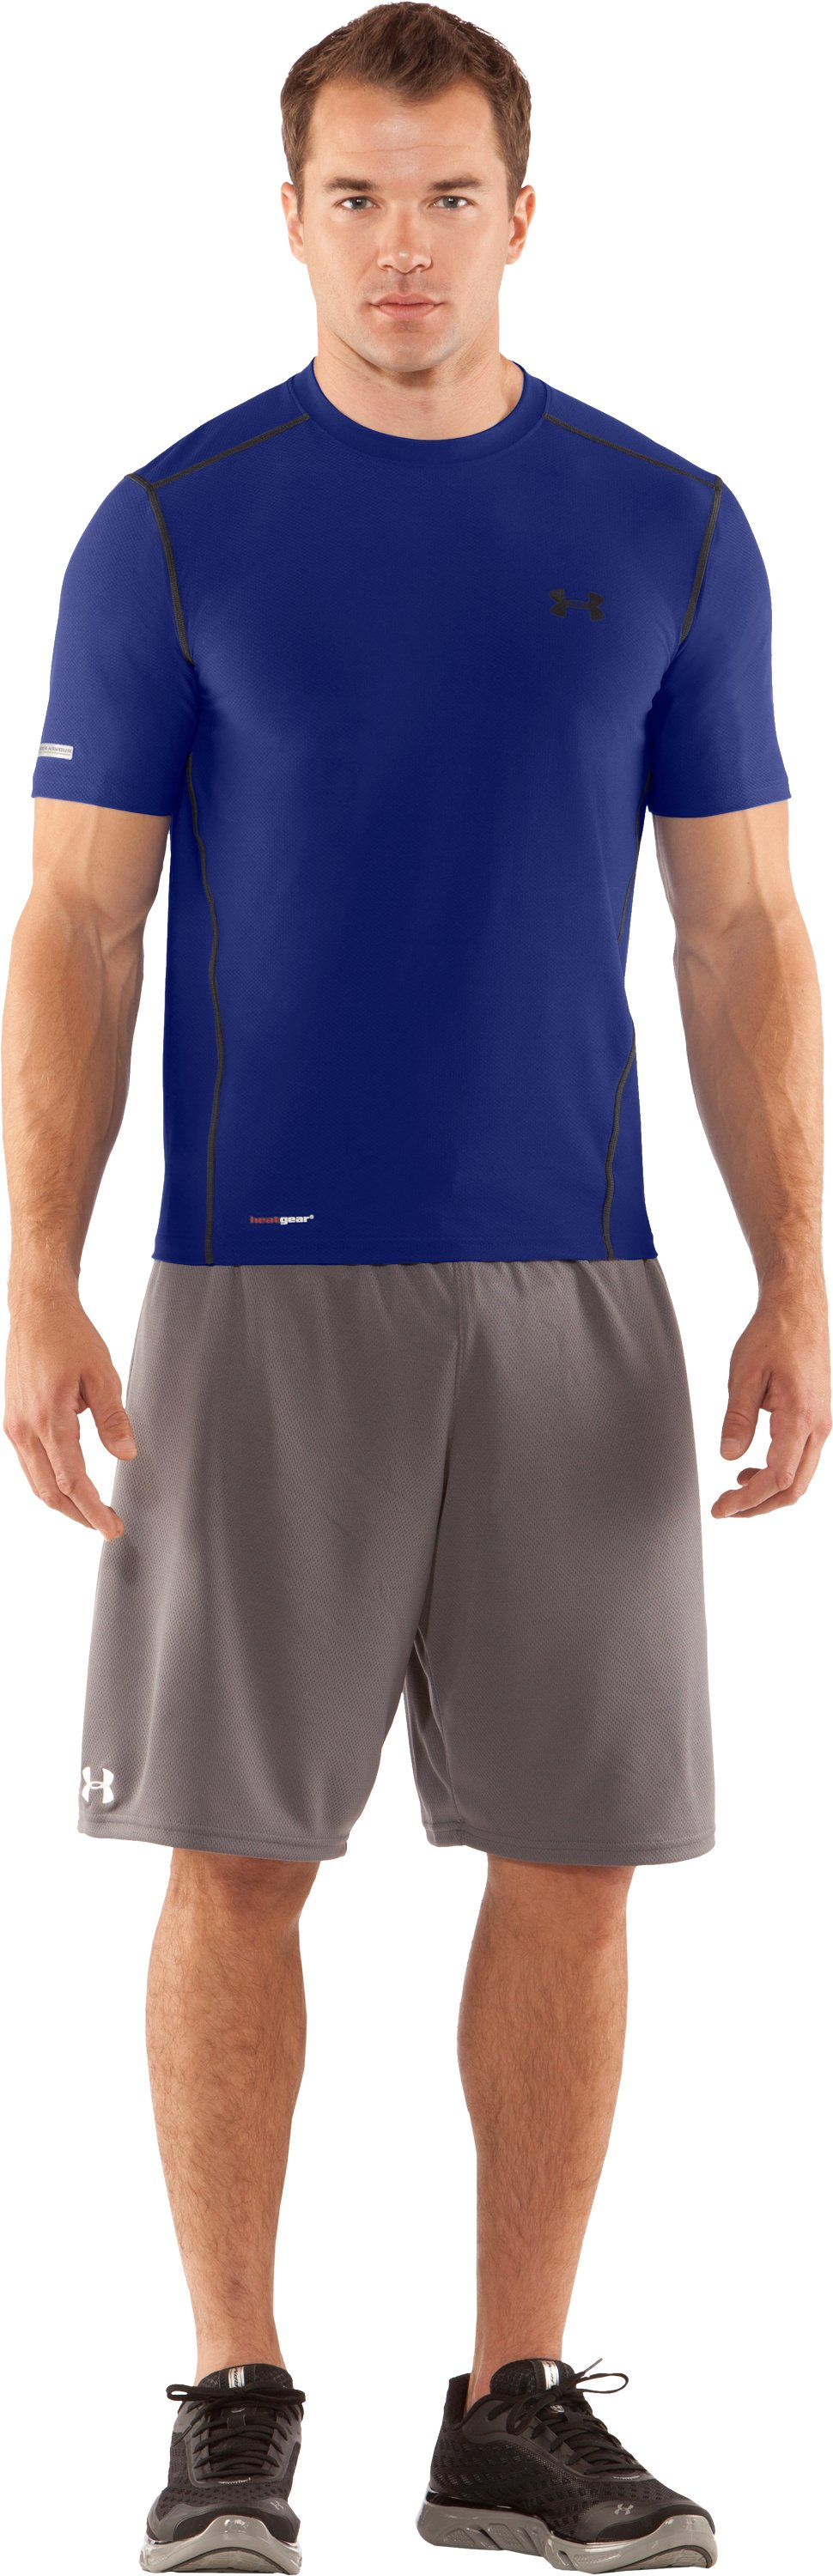 Men's HeatGear® Fitted Short Sleeve Crew, Royal